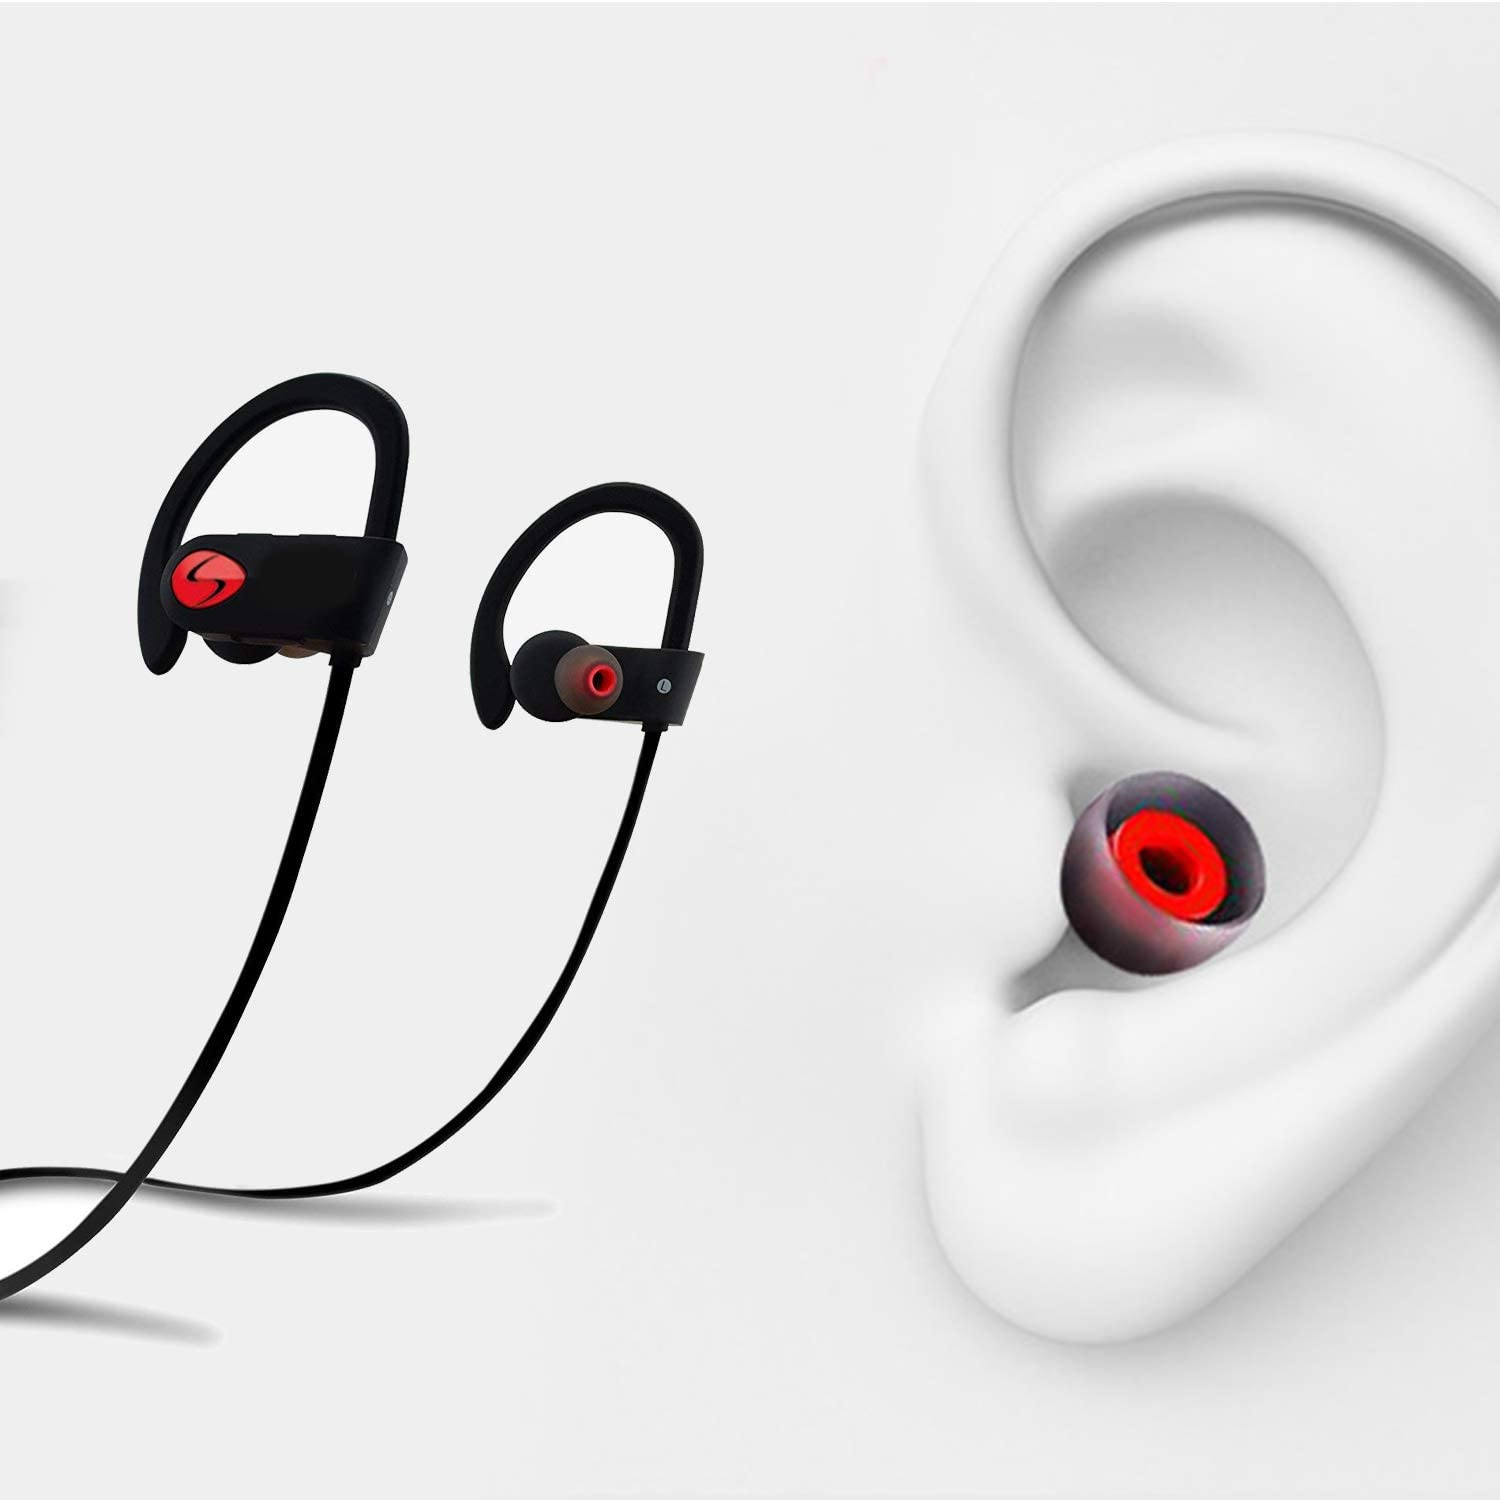 6 Paris Silicone Replacement Ear Tips Earbuds Eargels for Mpow,Senso,Zeus,Otium,Hussar,Letscom/ Bluetooth Earphones Black and Gray